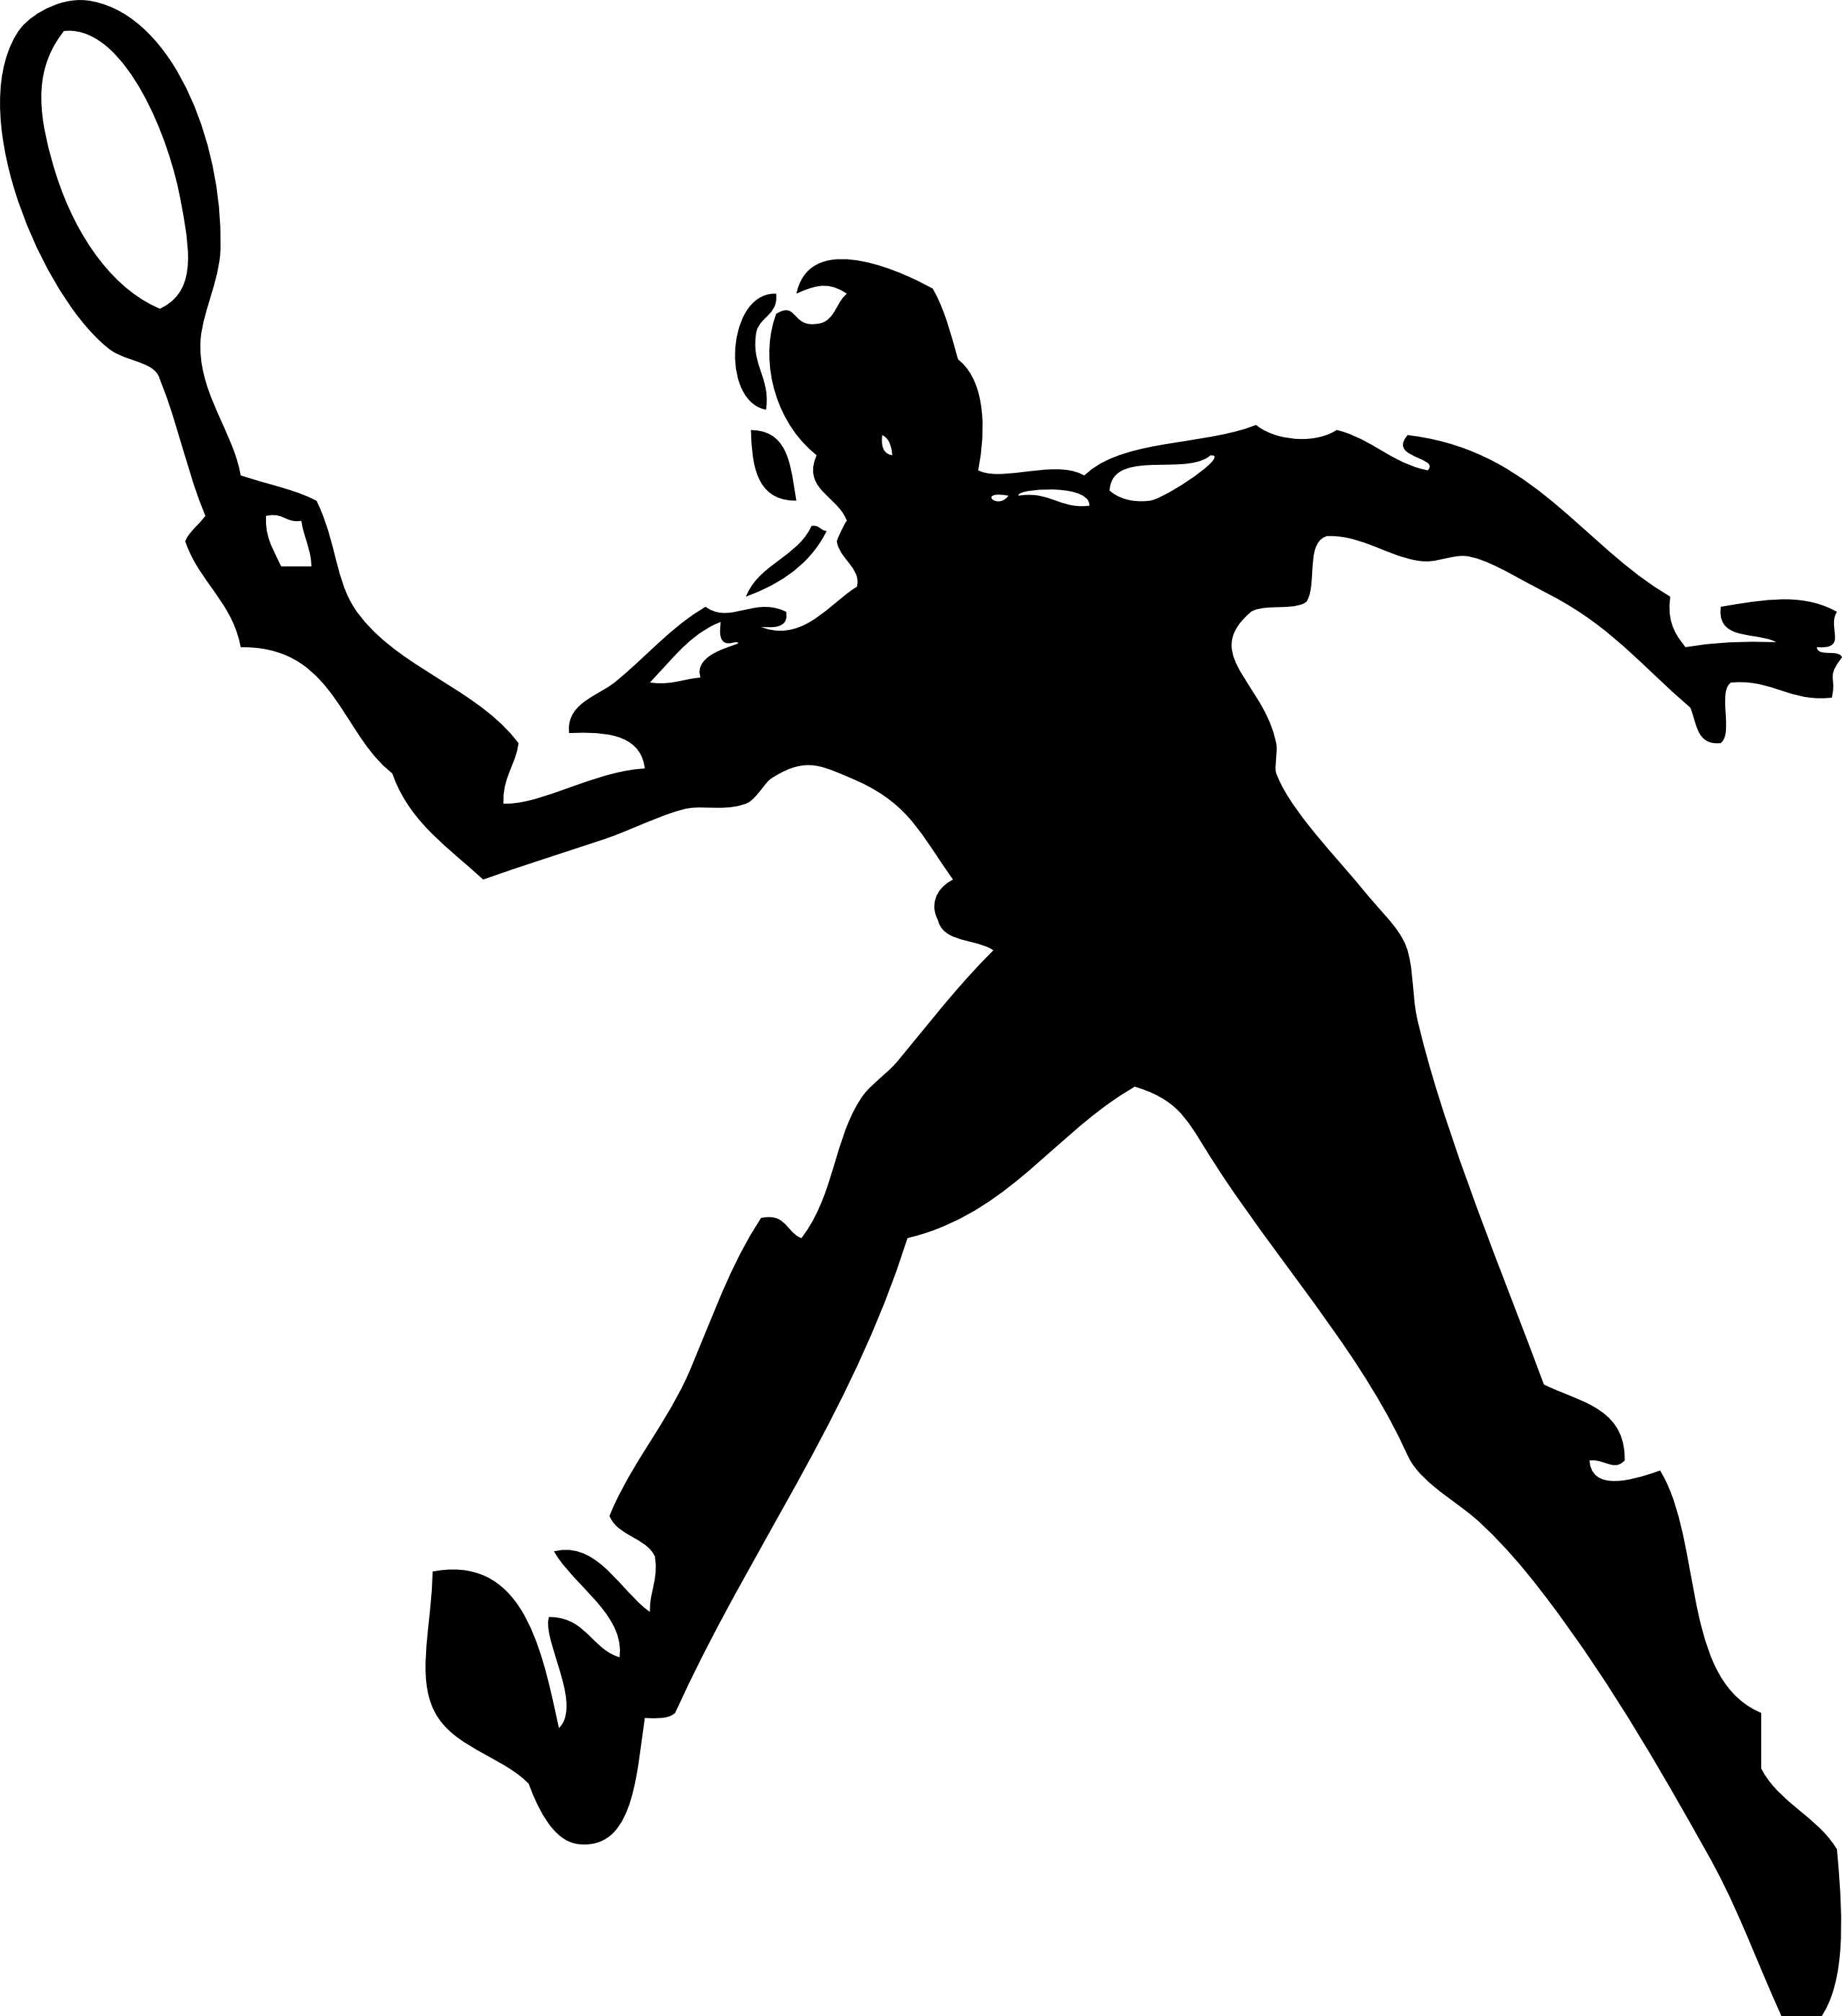 Tennis player clipart black and white black and white library tennis player black white | Clipart Panda - Free Clipart Images black and white library